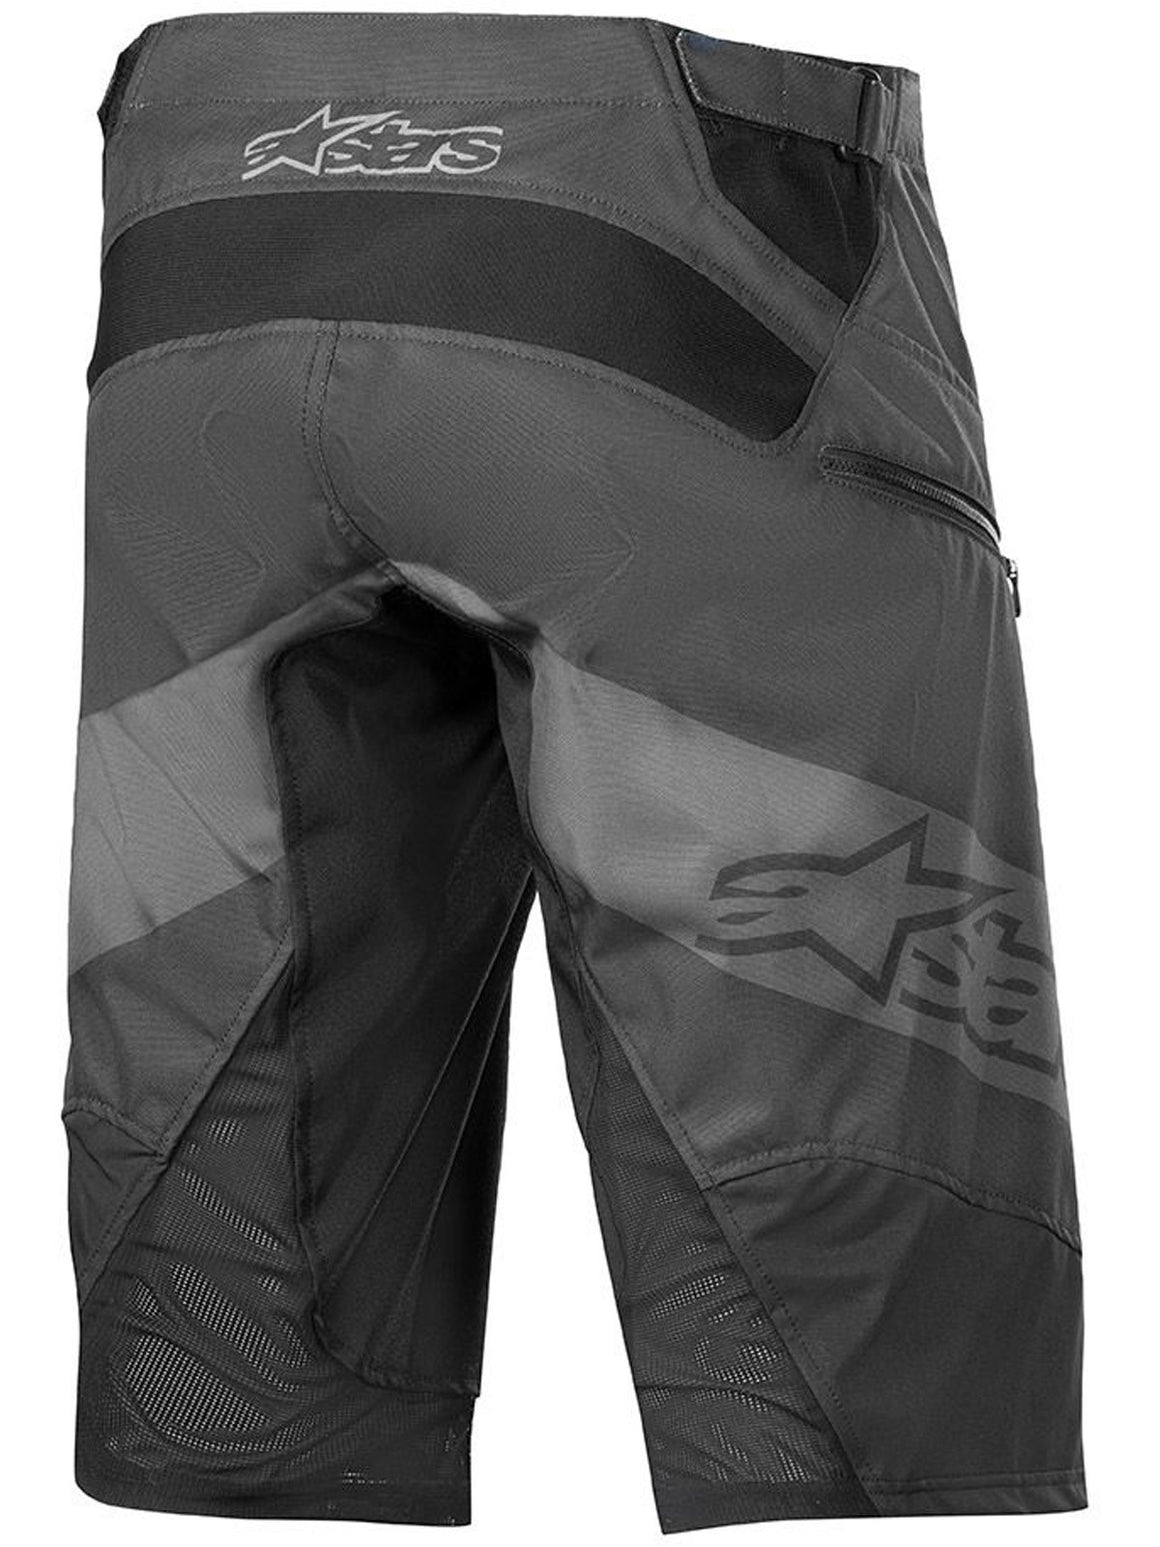 Alpinestars Racer Short, mens - grey